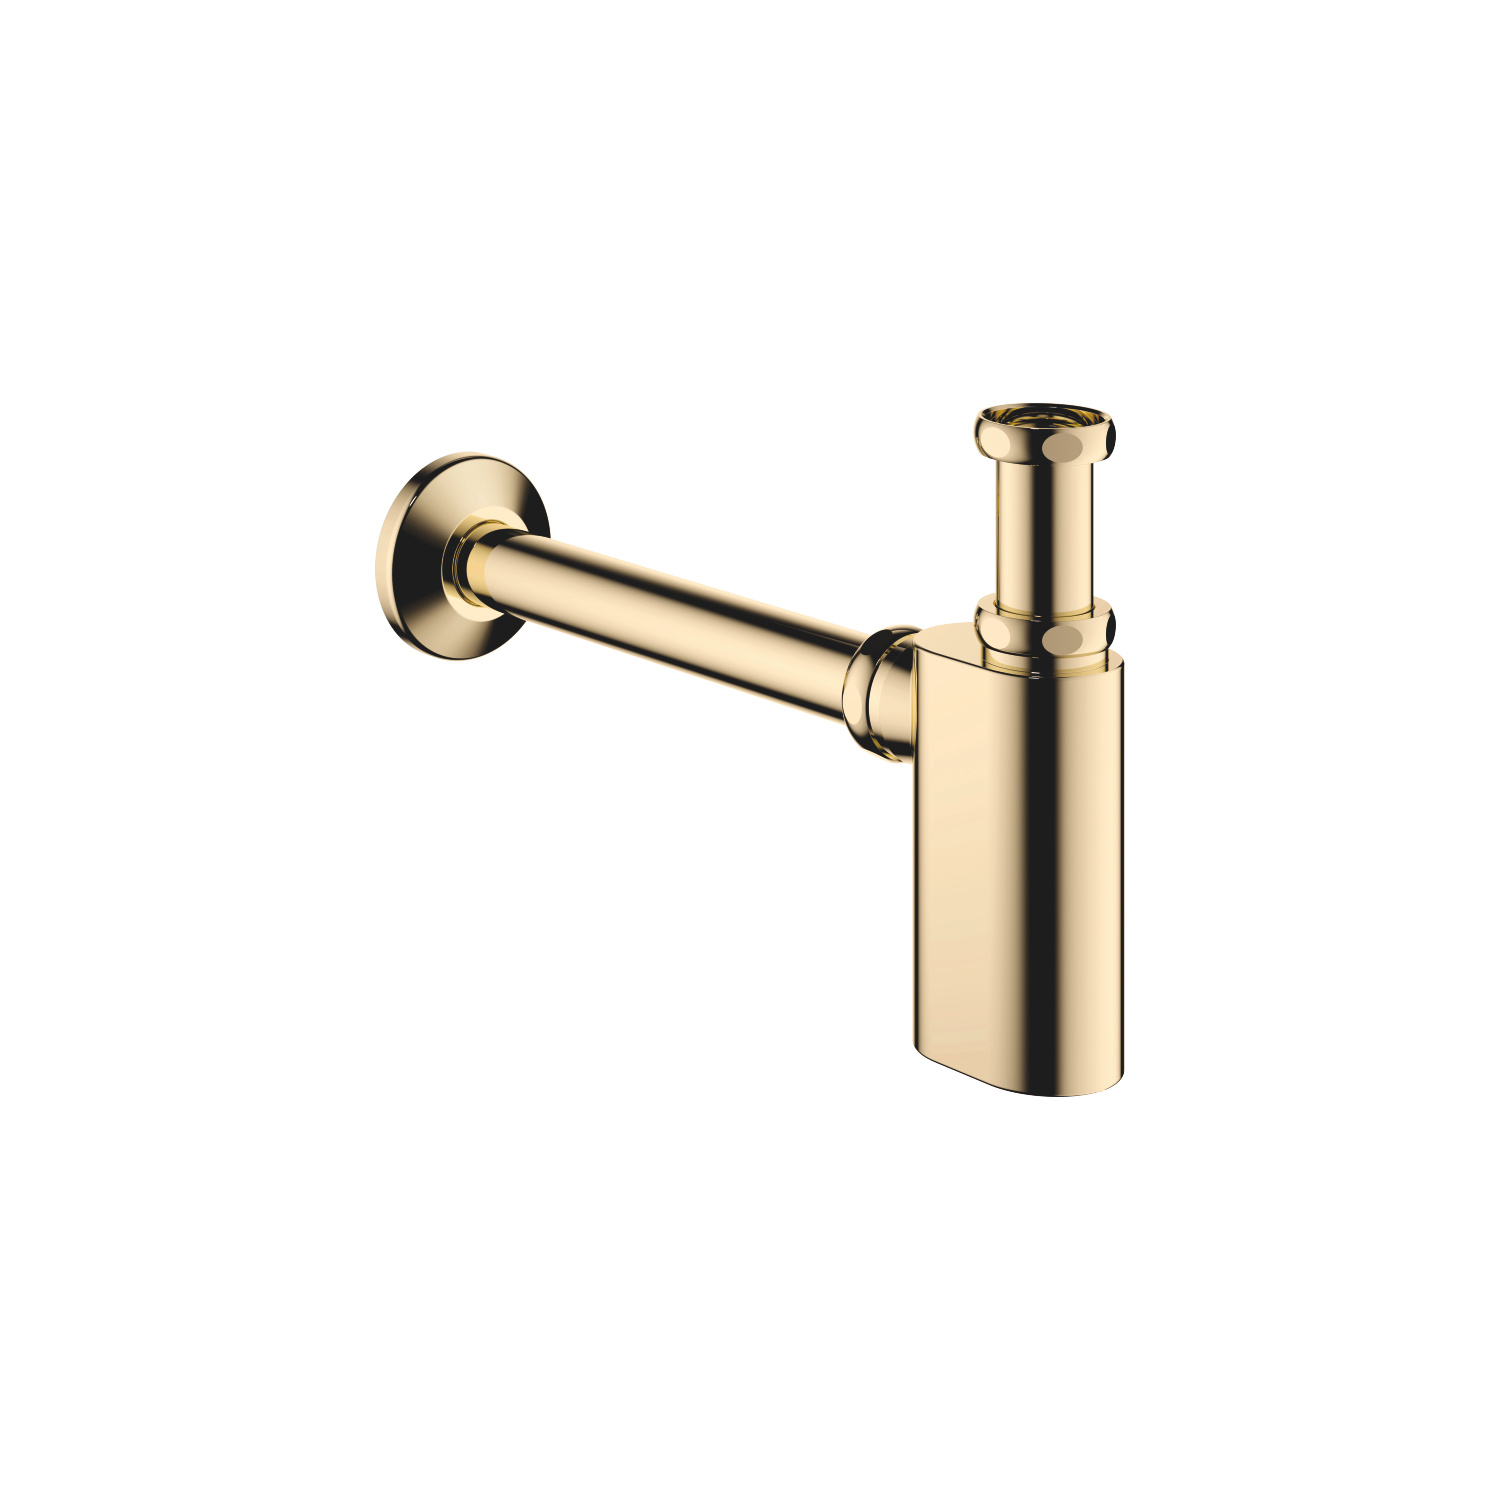 "Siphon for basin 1 1/4"" - Durabrass"